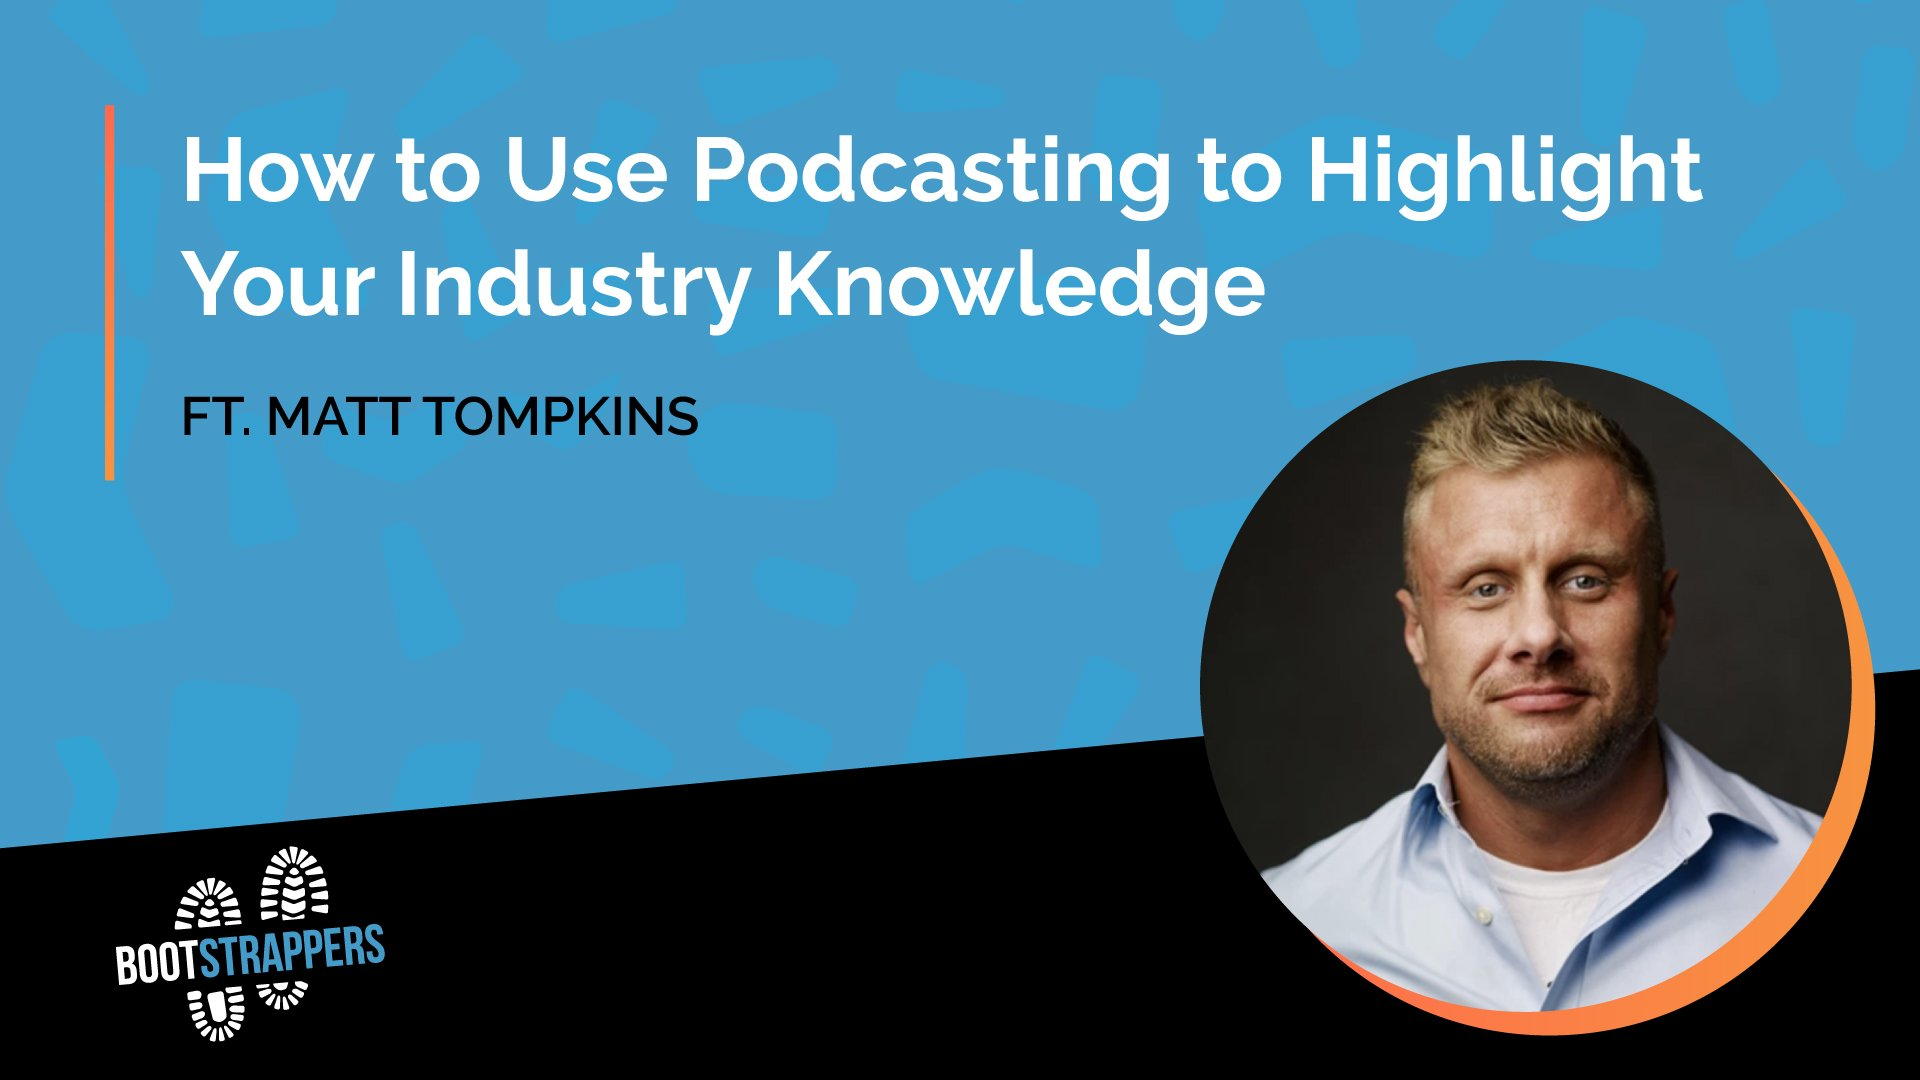 anequim-bootstrappers-how-to-use-podcasting